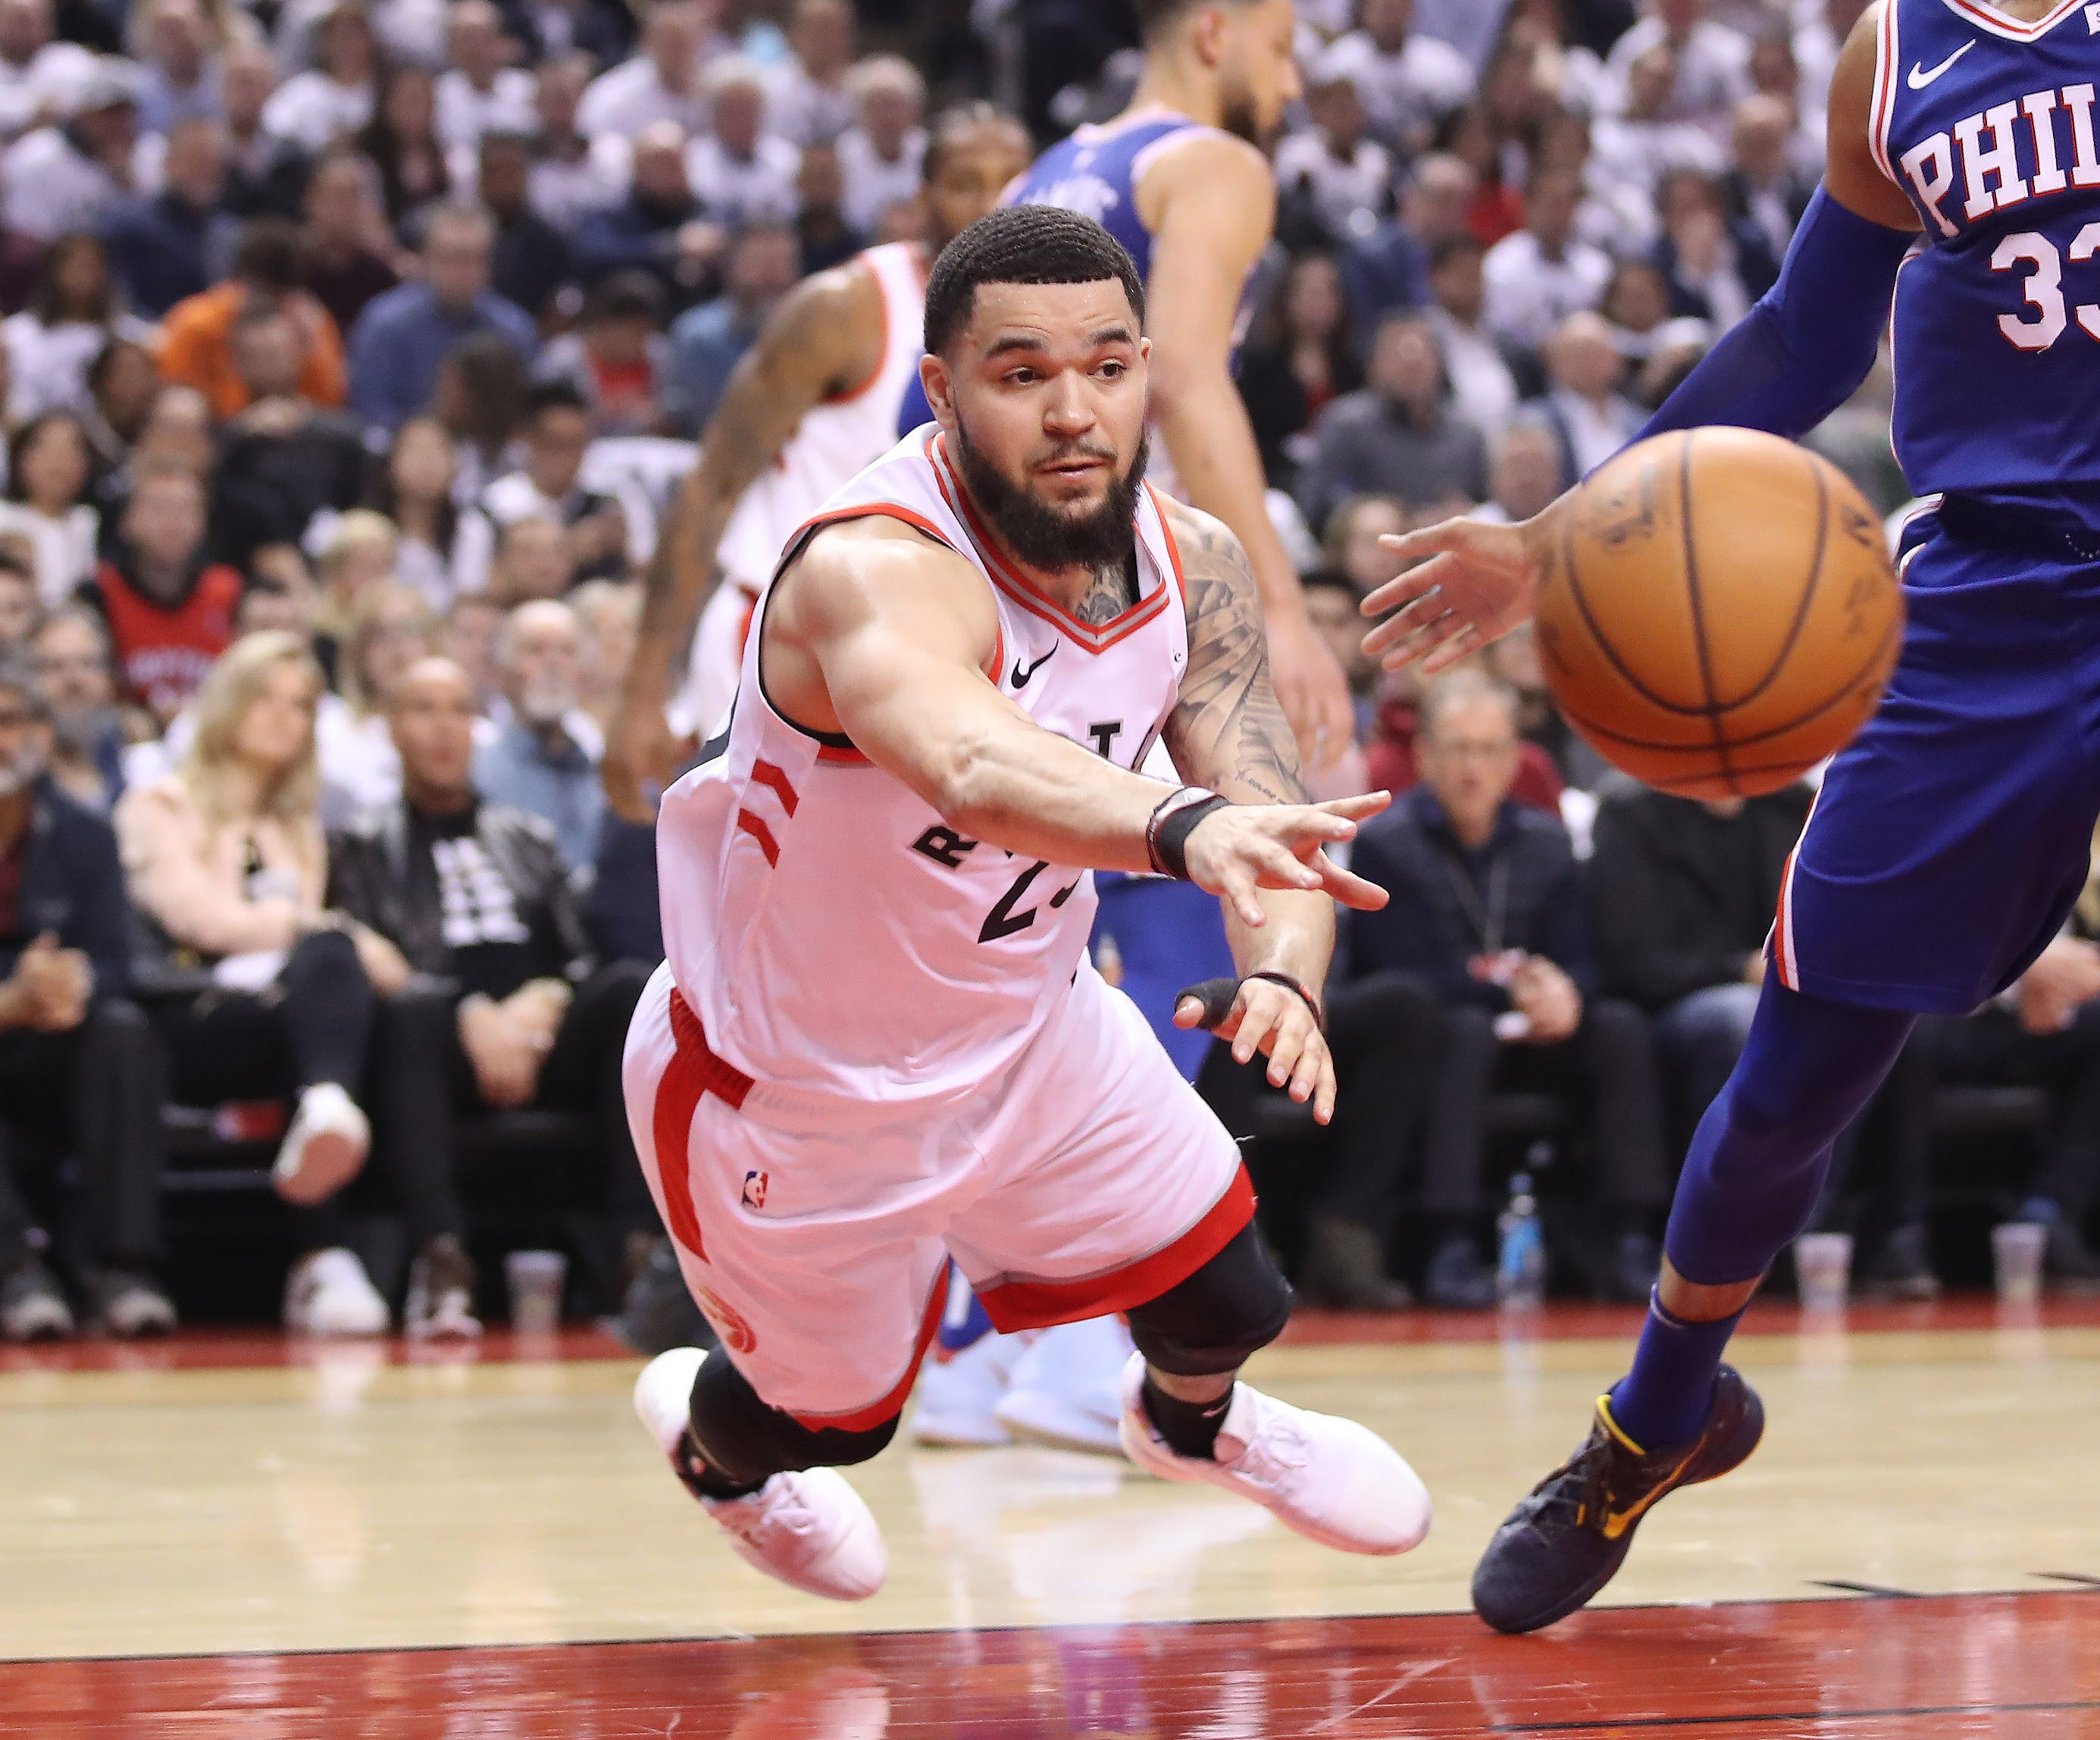 April 29: Raptors guard Fred VanVleet passes while falling to the floor during Game 2 against the 76ers.